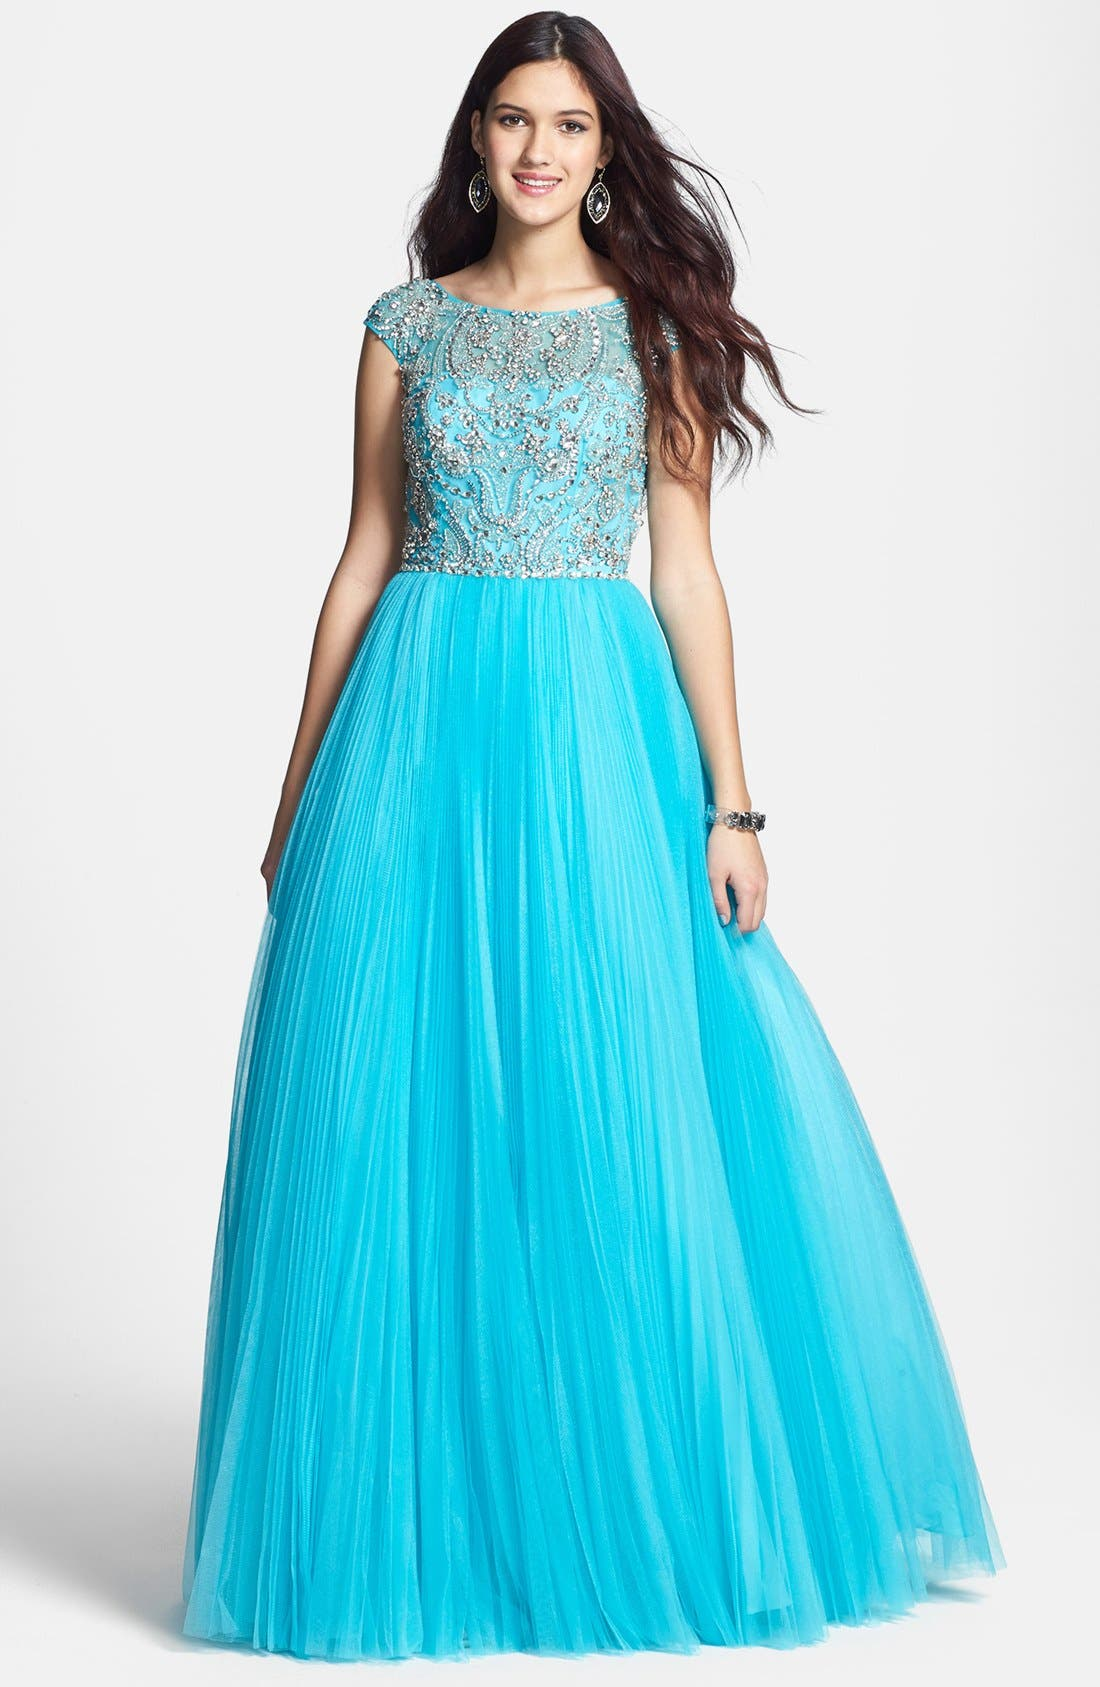 Alternate Image 1 Selected - Sherri Hill Cap Sleeve Embellished Ballgown